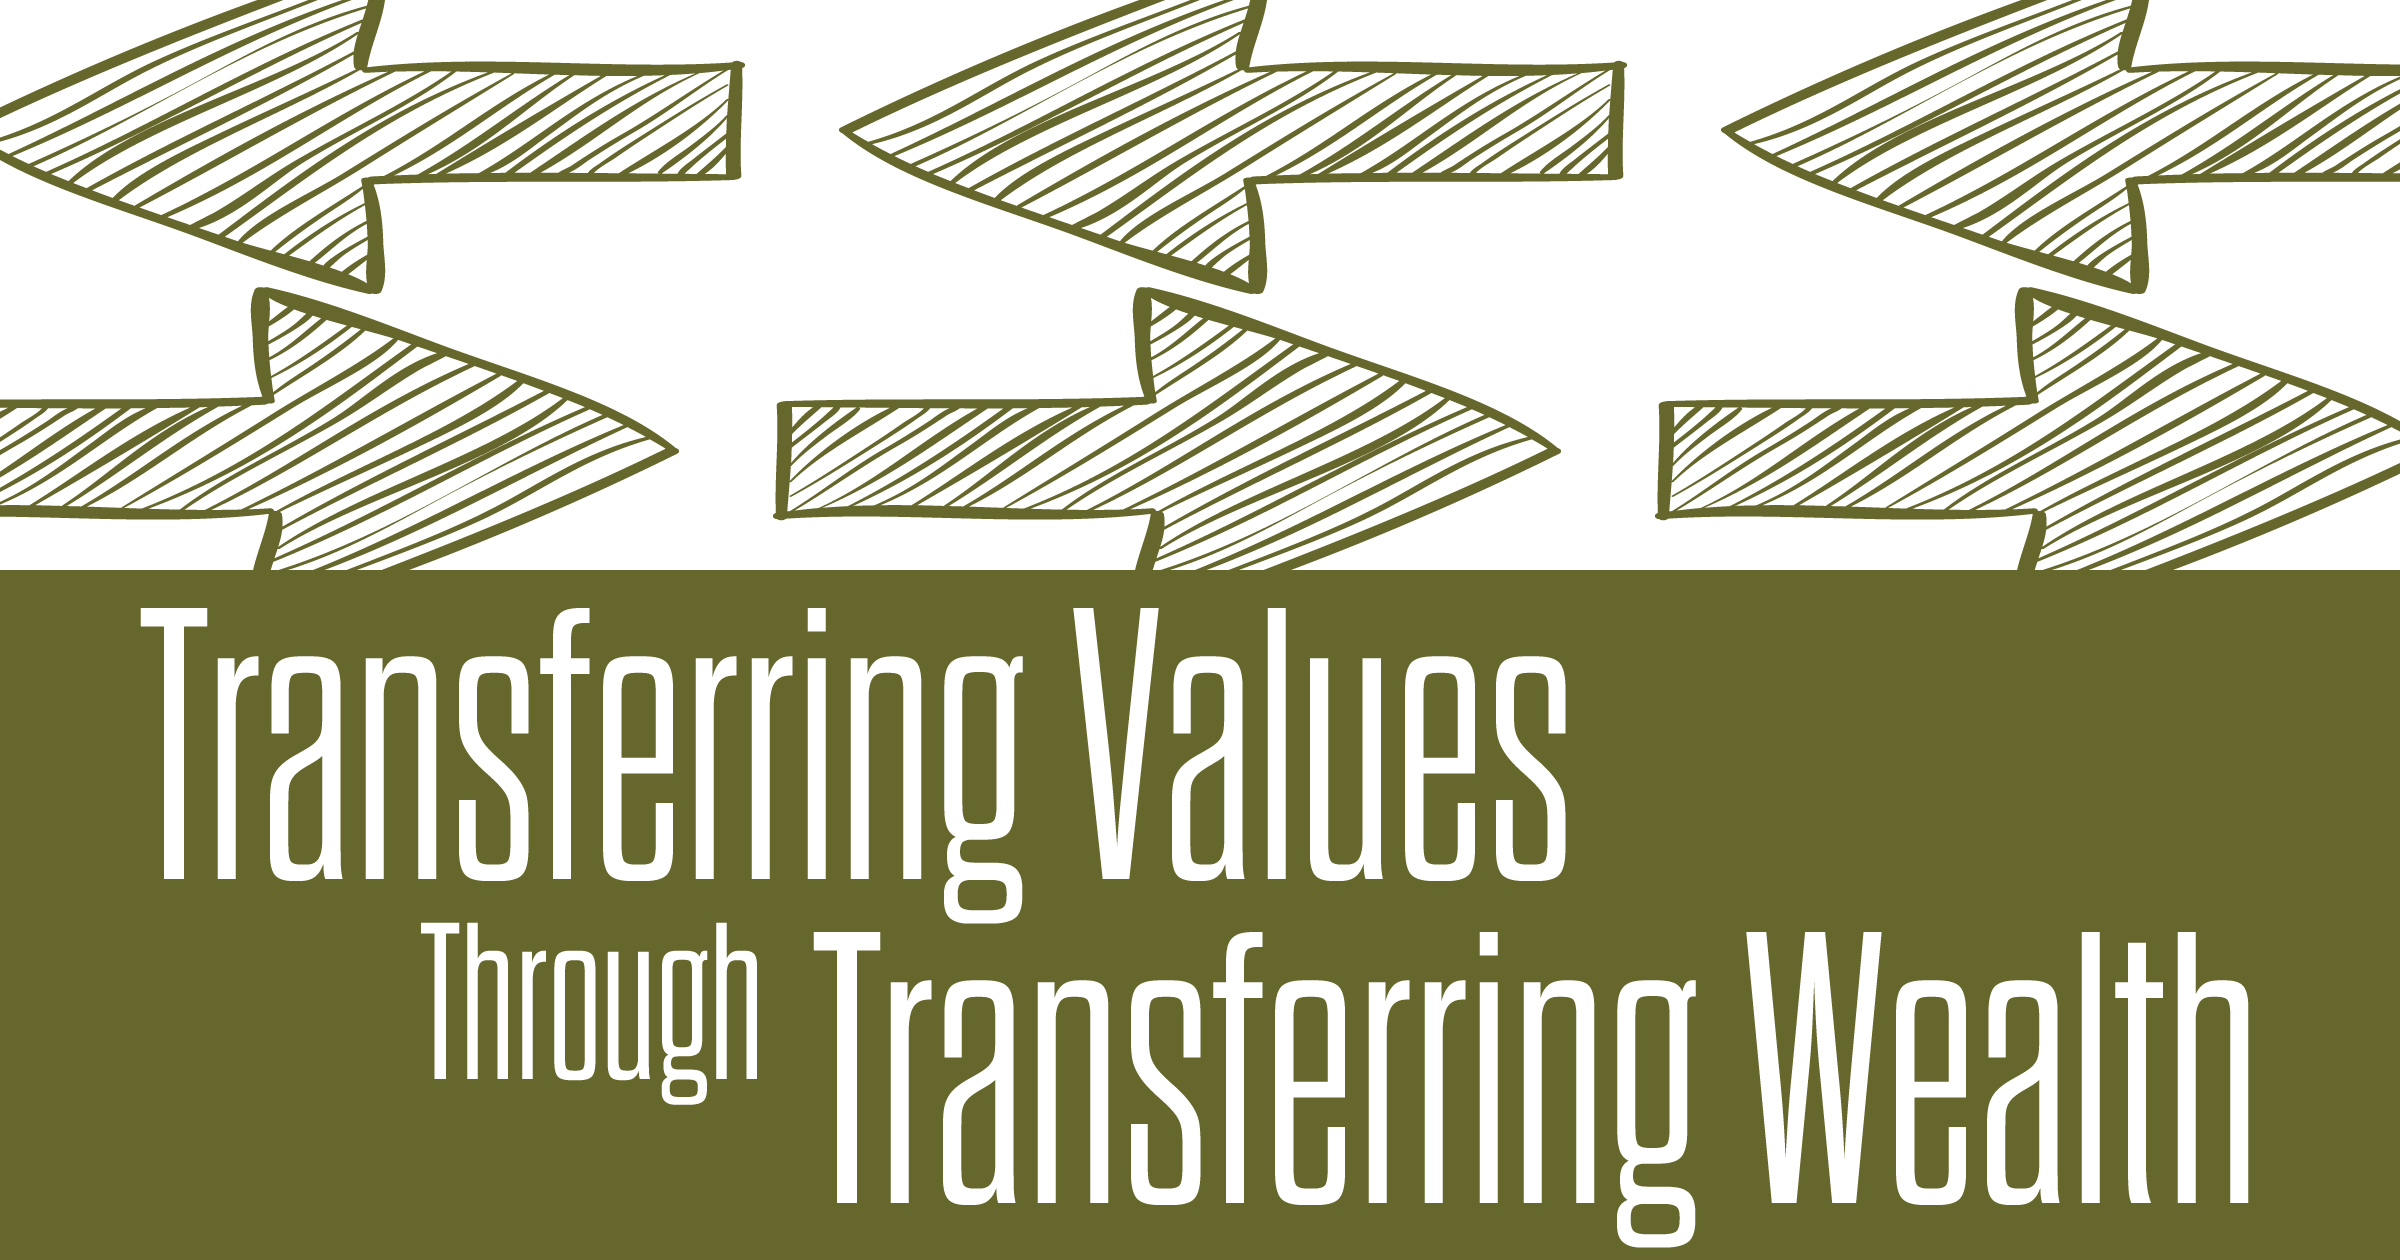 Transferring Values Through Transferring Wealth